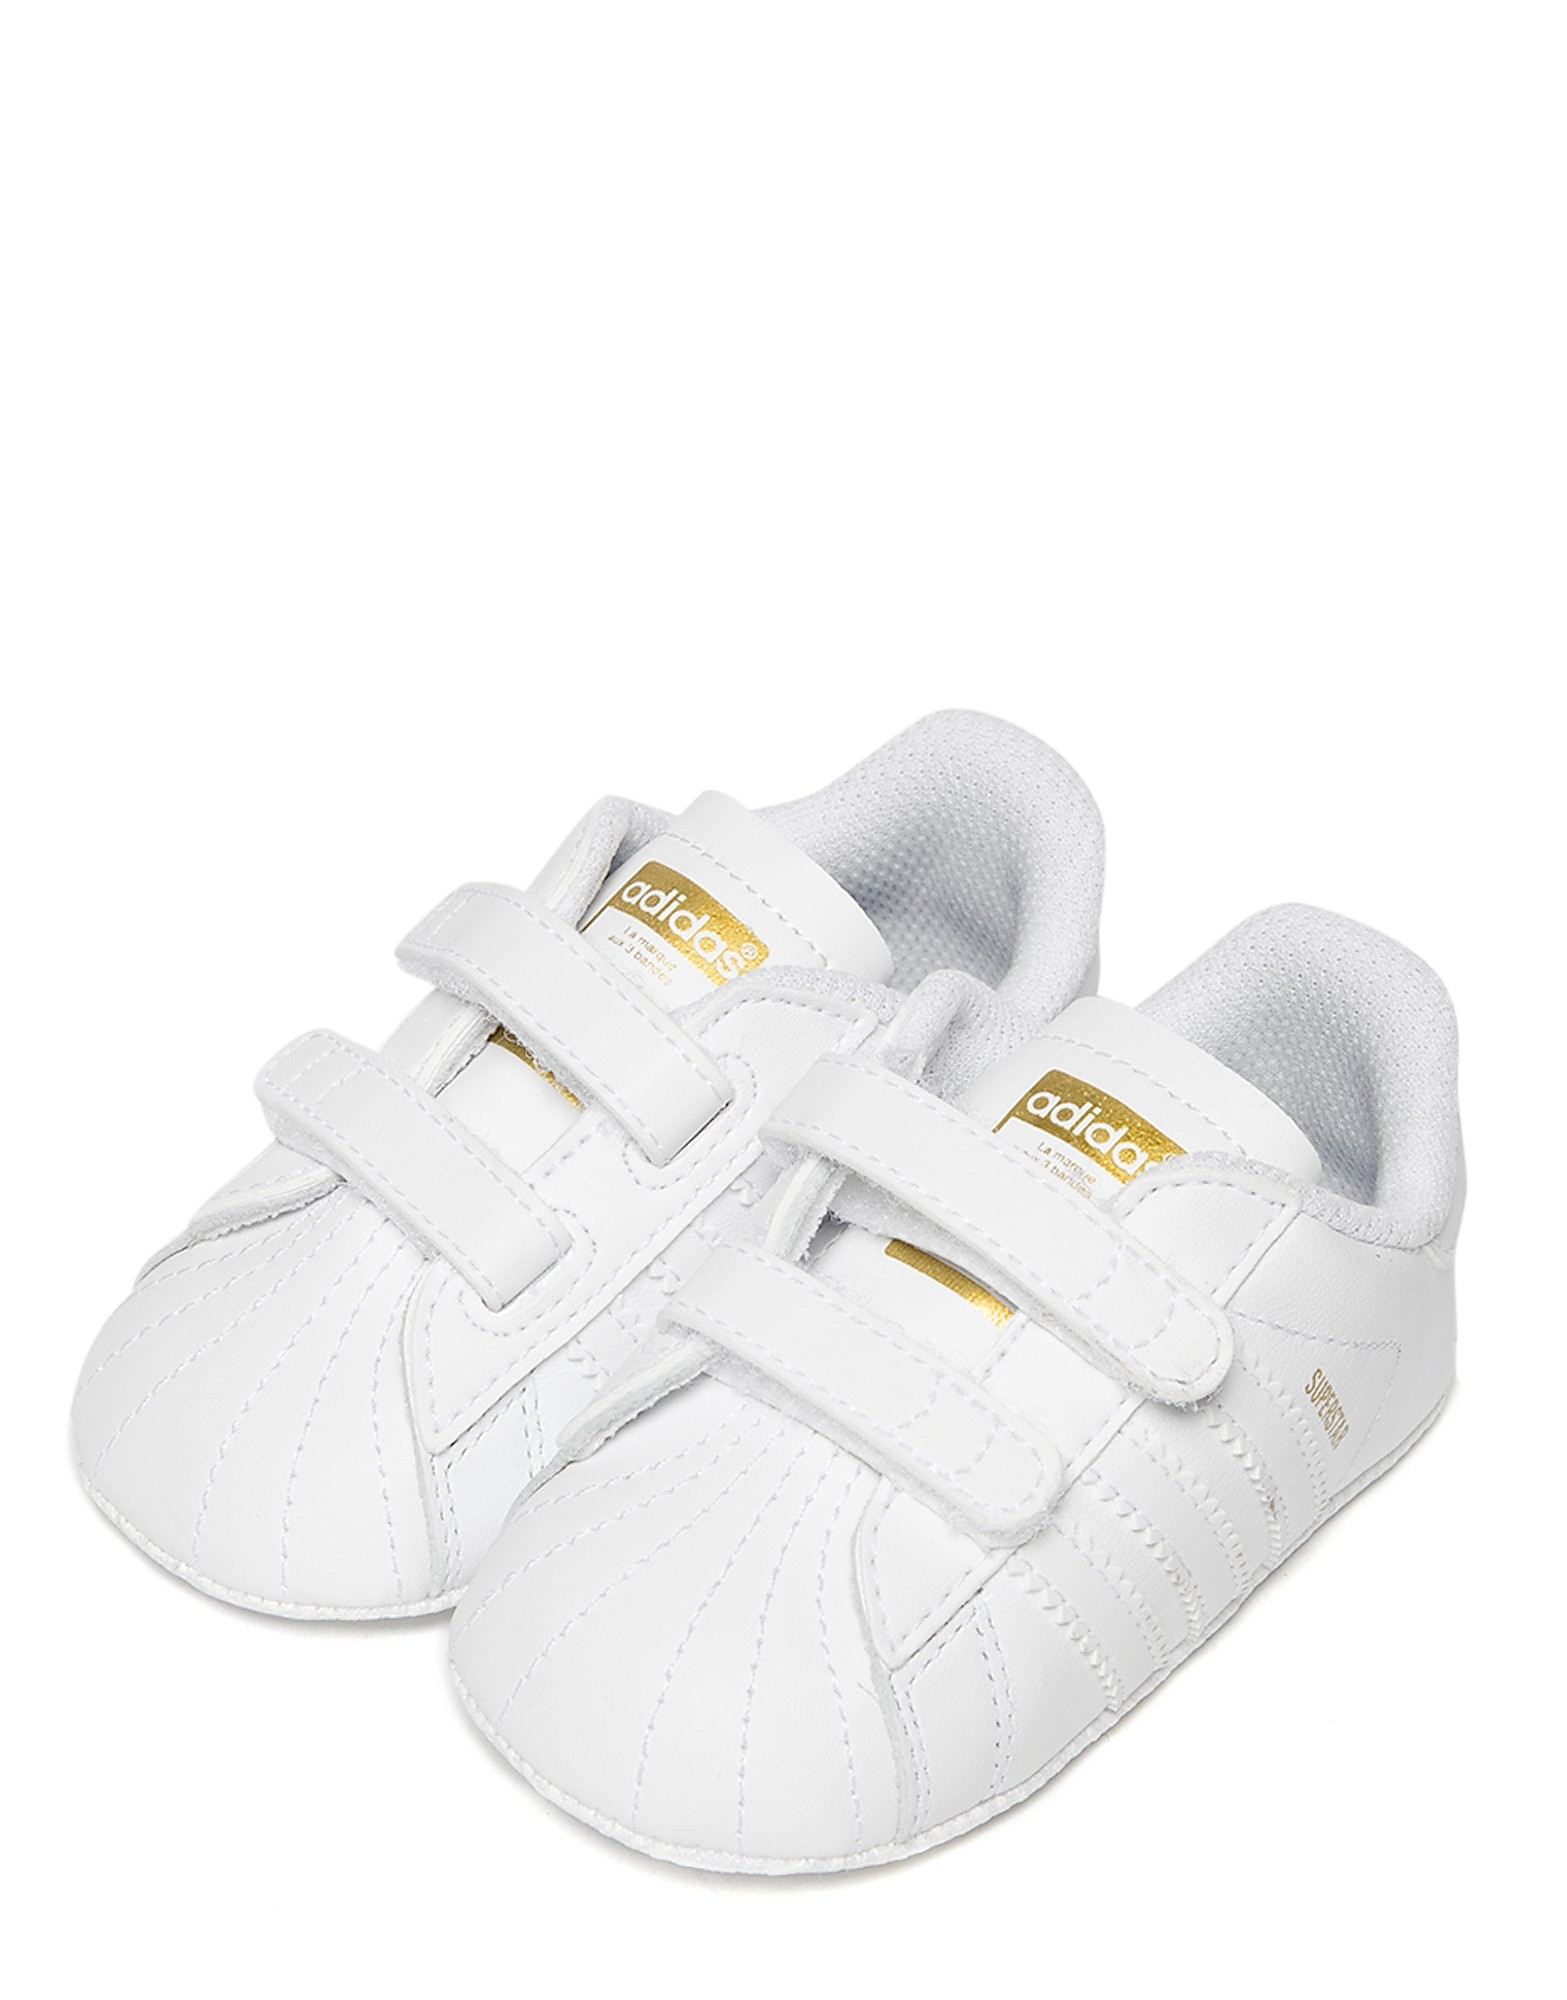 adidas Originals Superstar Crib Baby